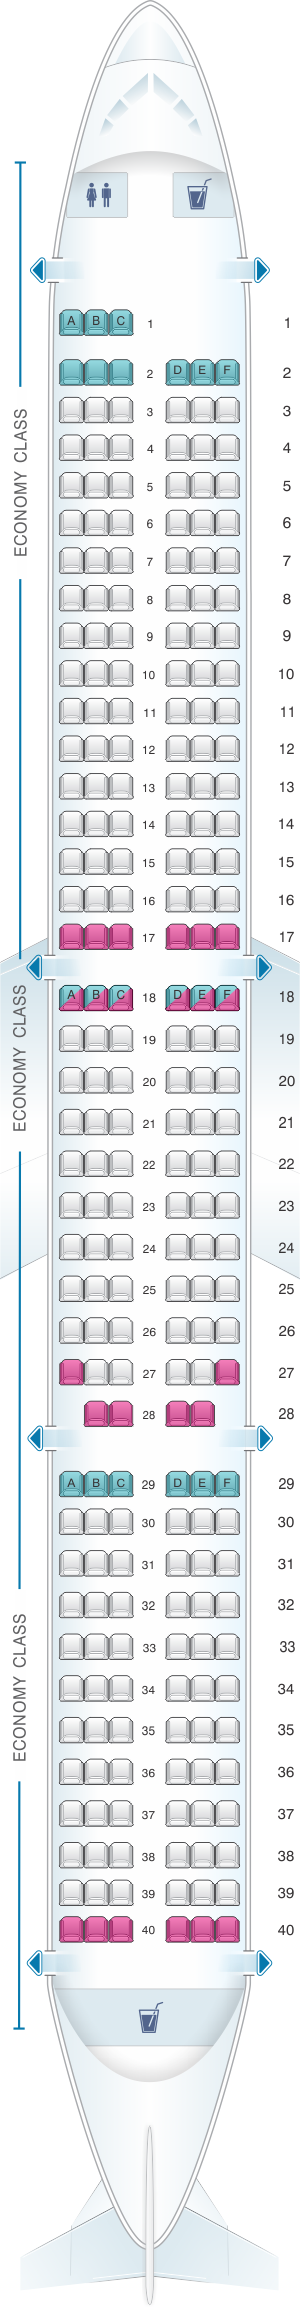 Seat map for easyJet Aibus A321 Neo